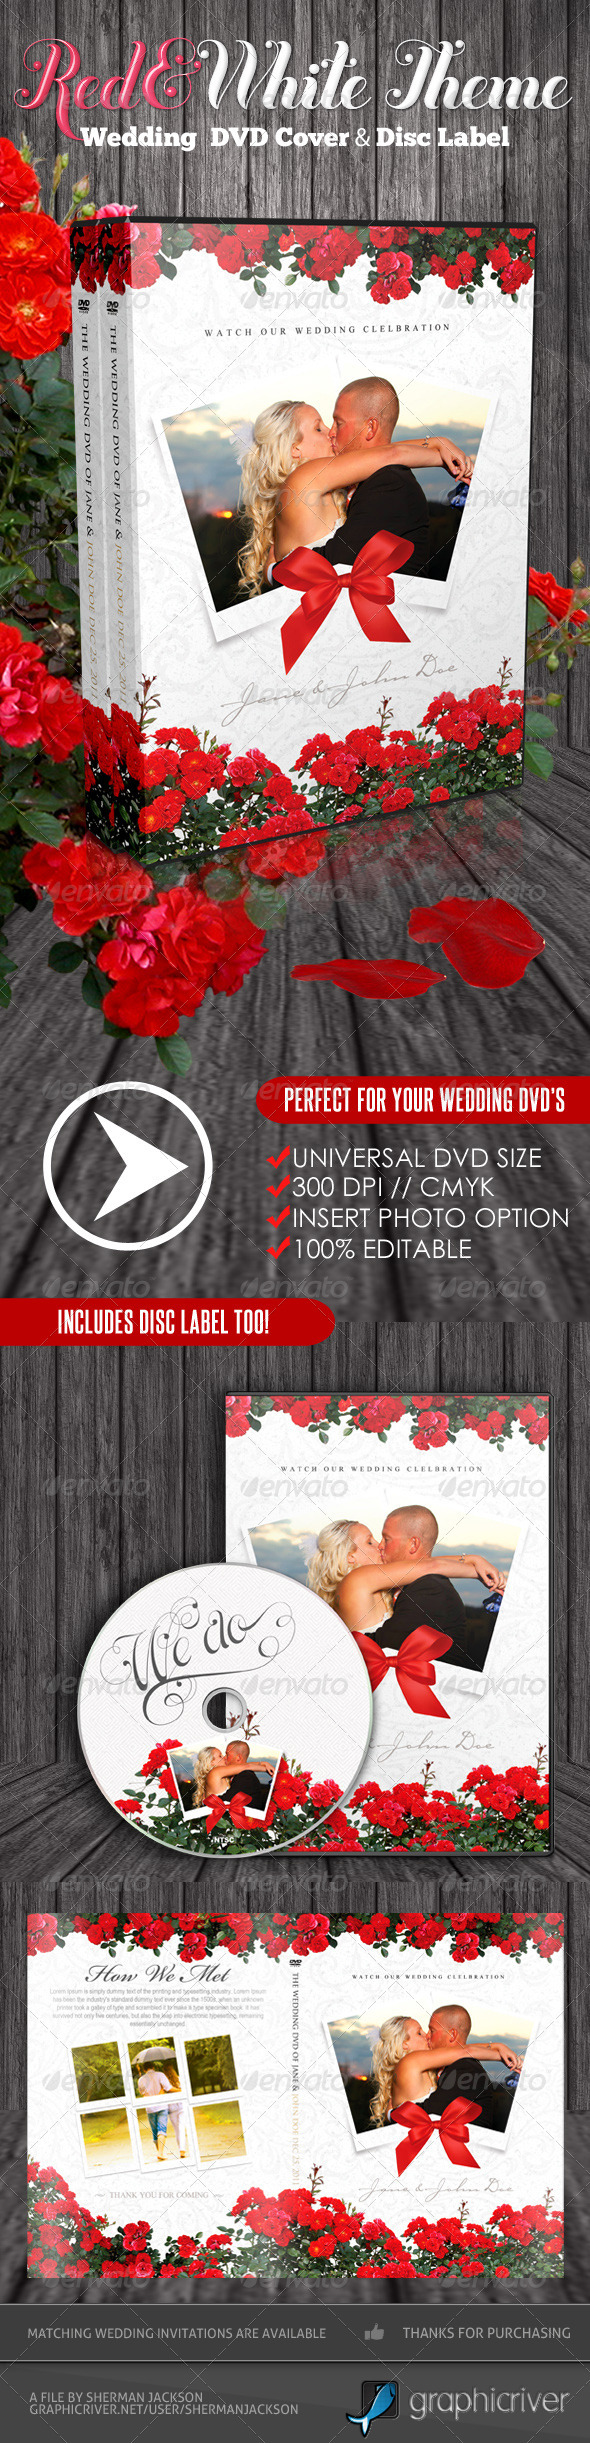 Red & White Theme Wedding DVD & Disc Label